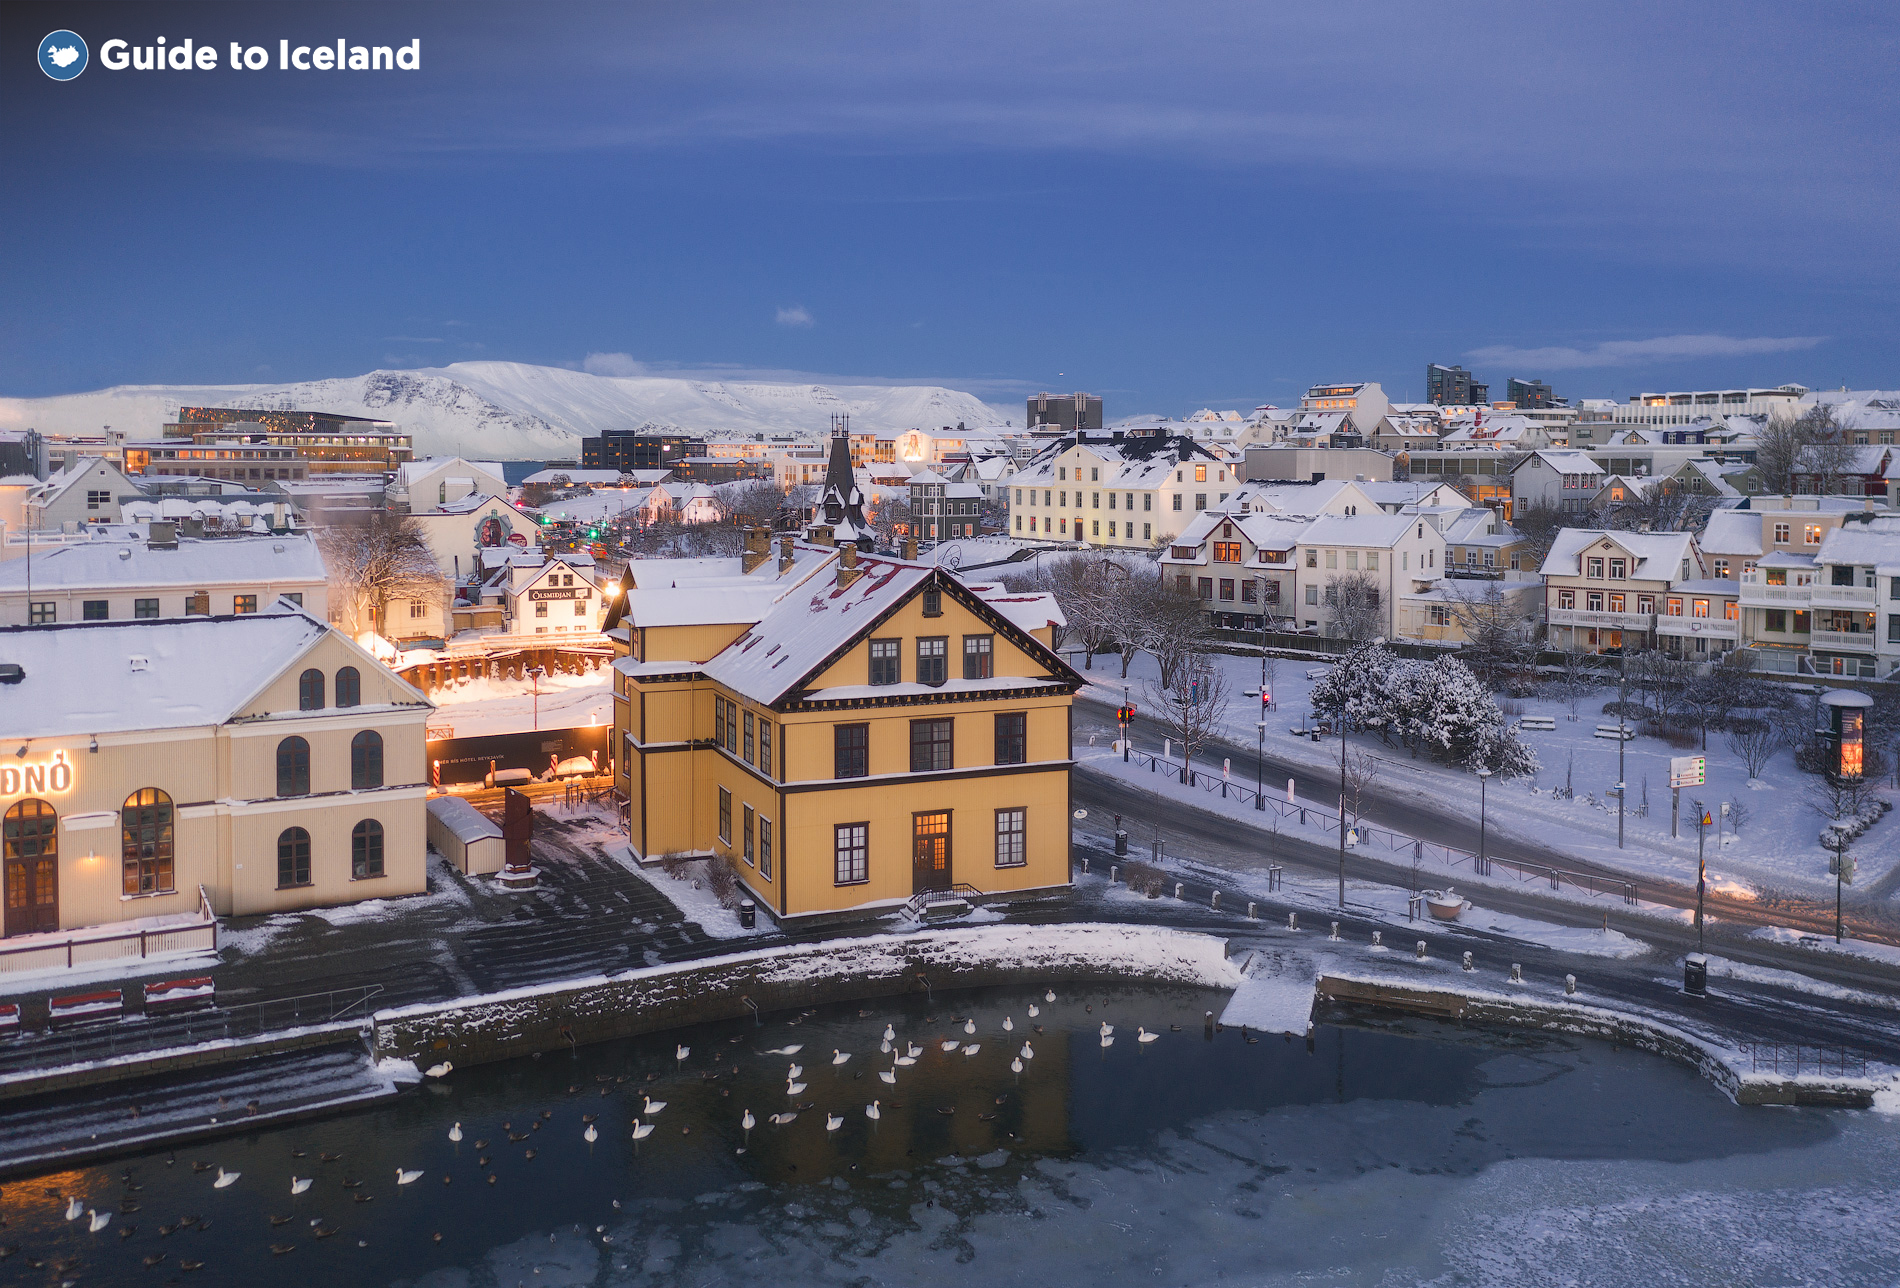 The city of Reykjavik blanketed in snow in wintertime